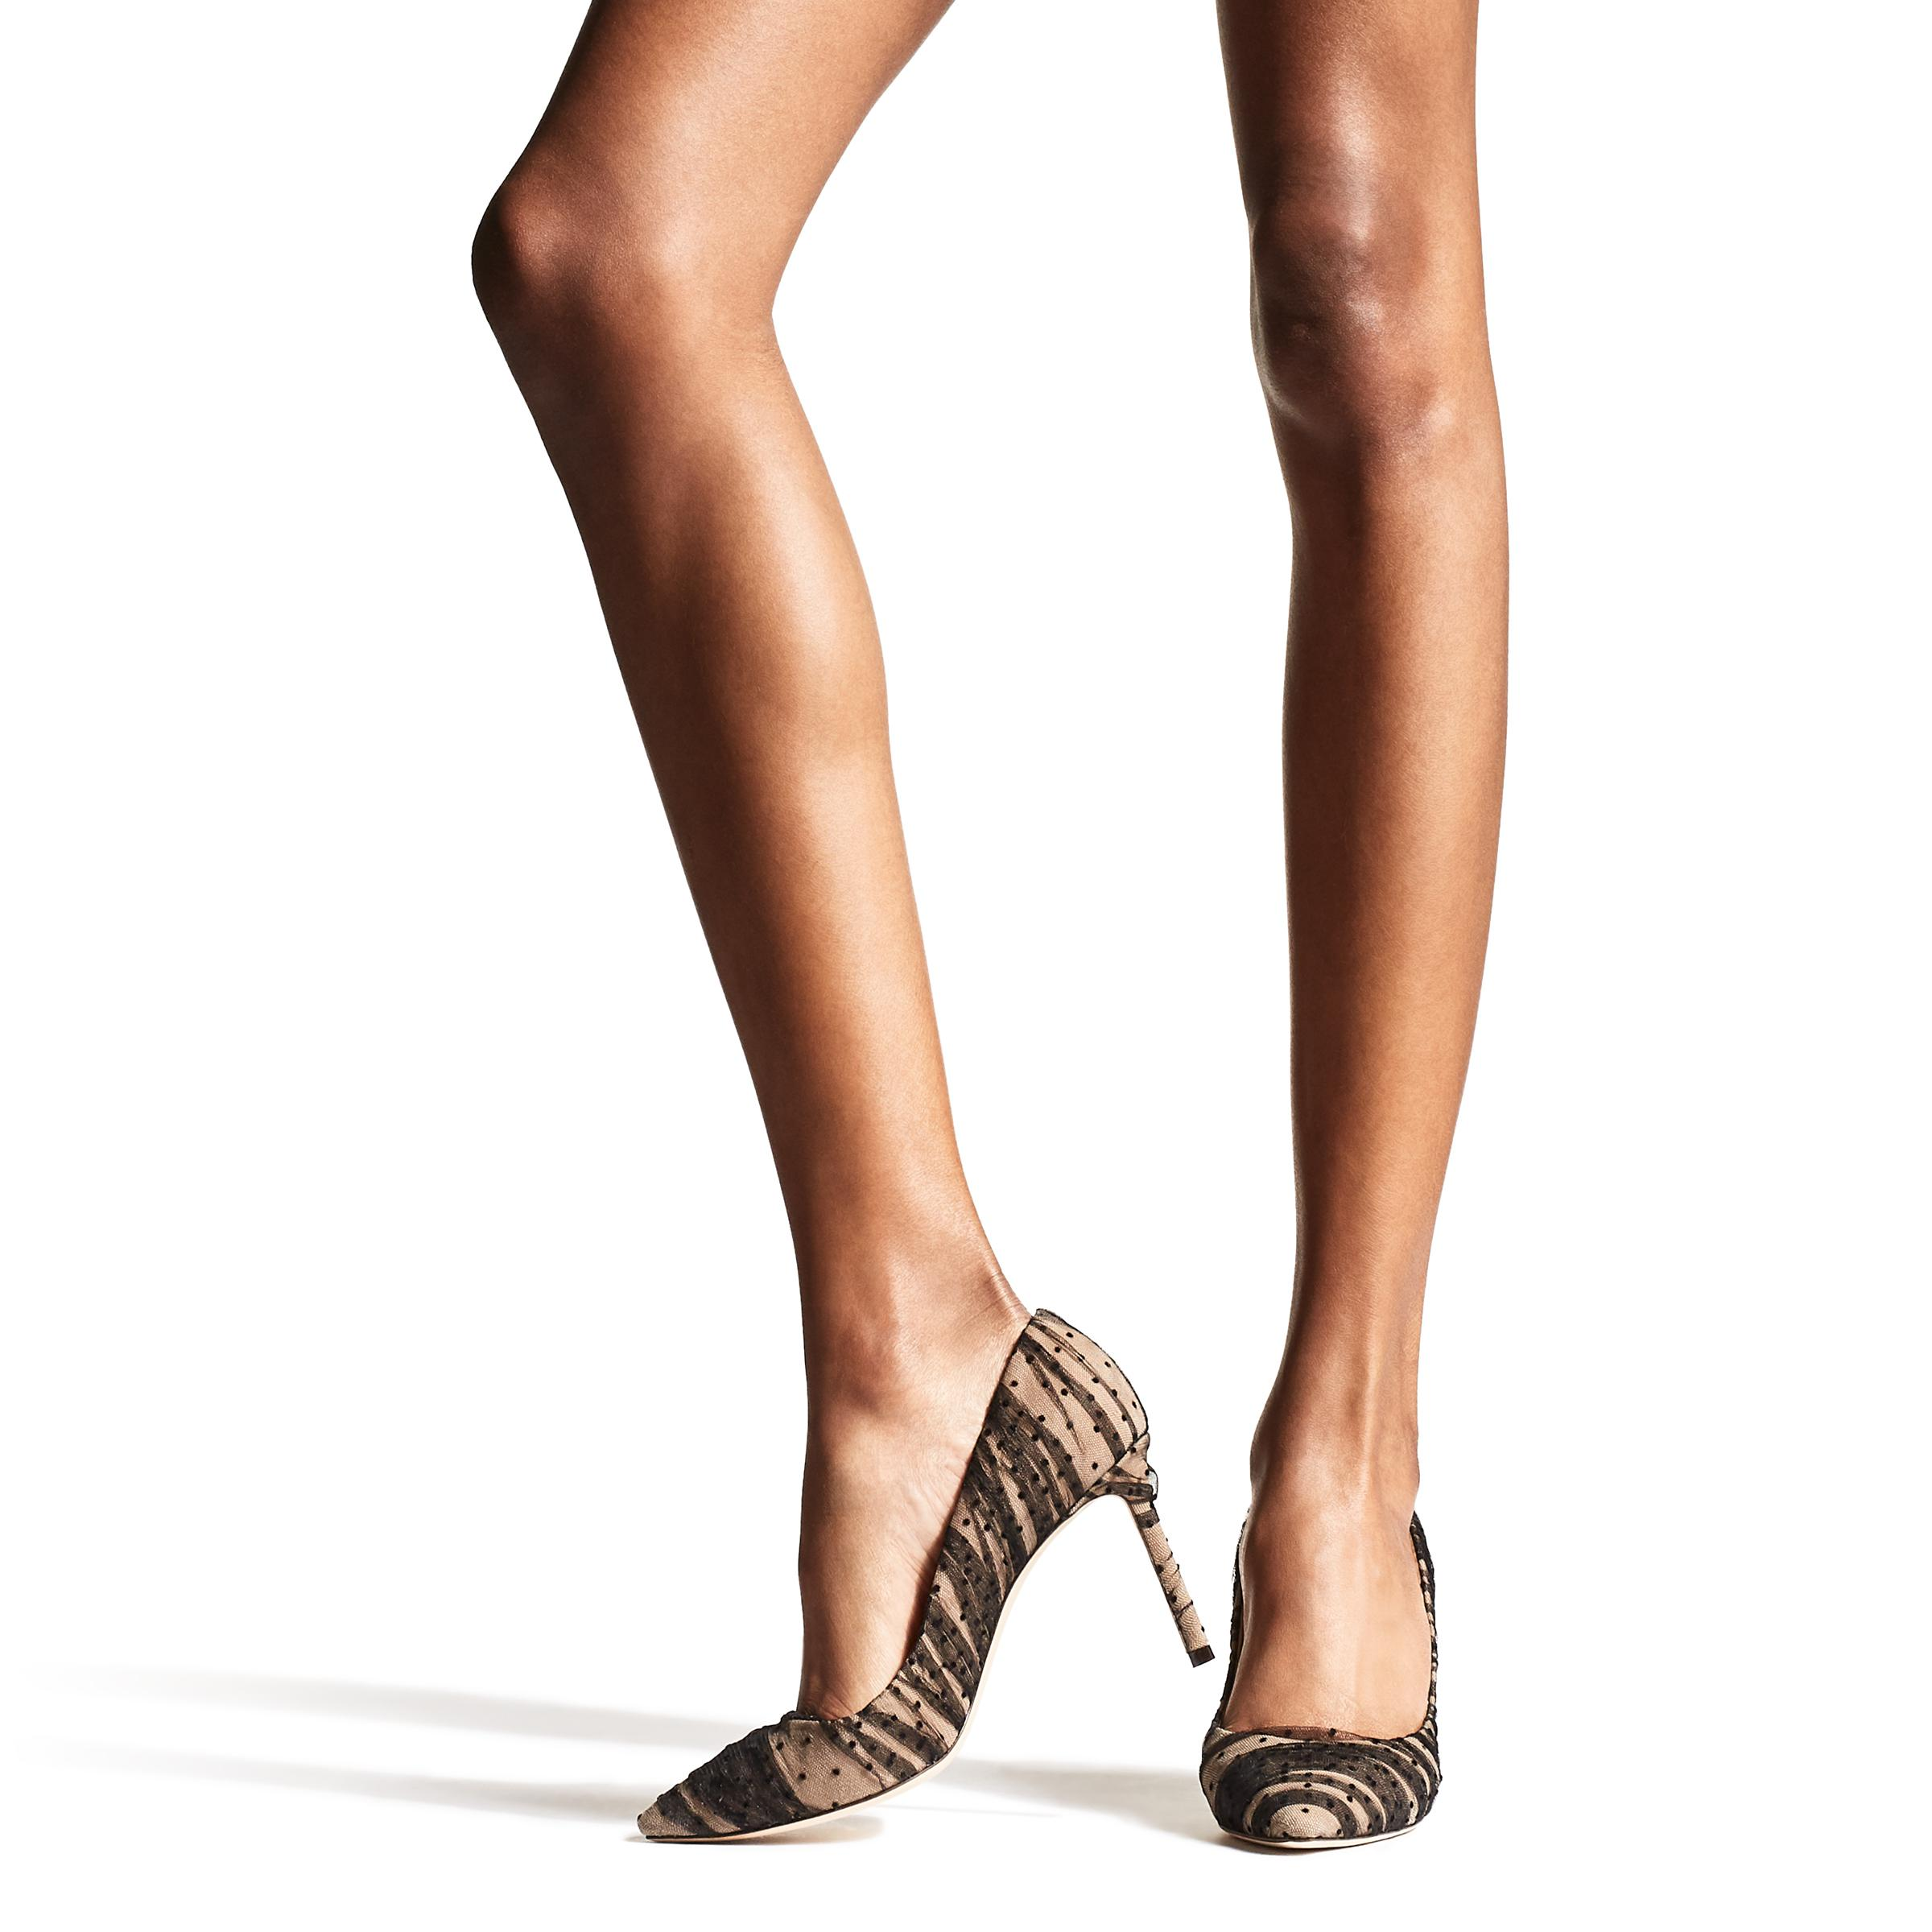 7177e8bc16 Jimmy Choo - Black Romy 100 Nude Suede Pointy Toe Pumps With - Lyst. View  fullscreen